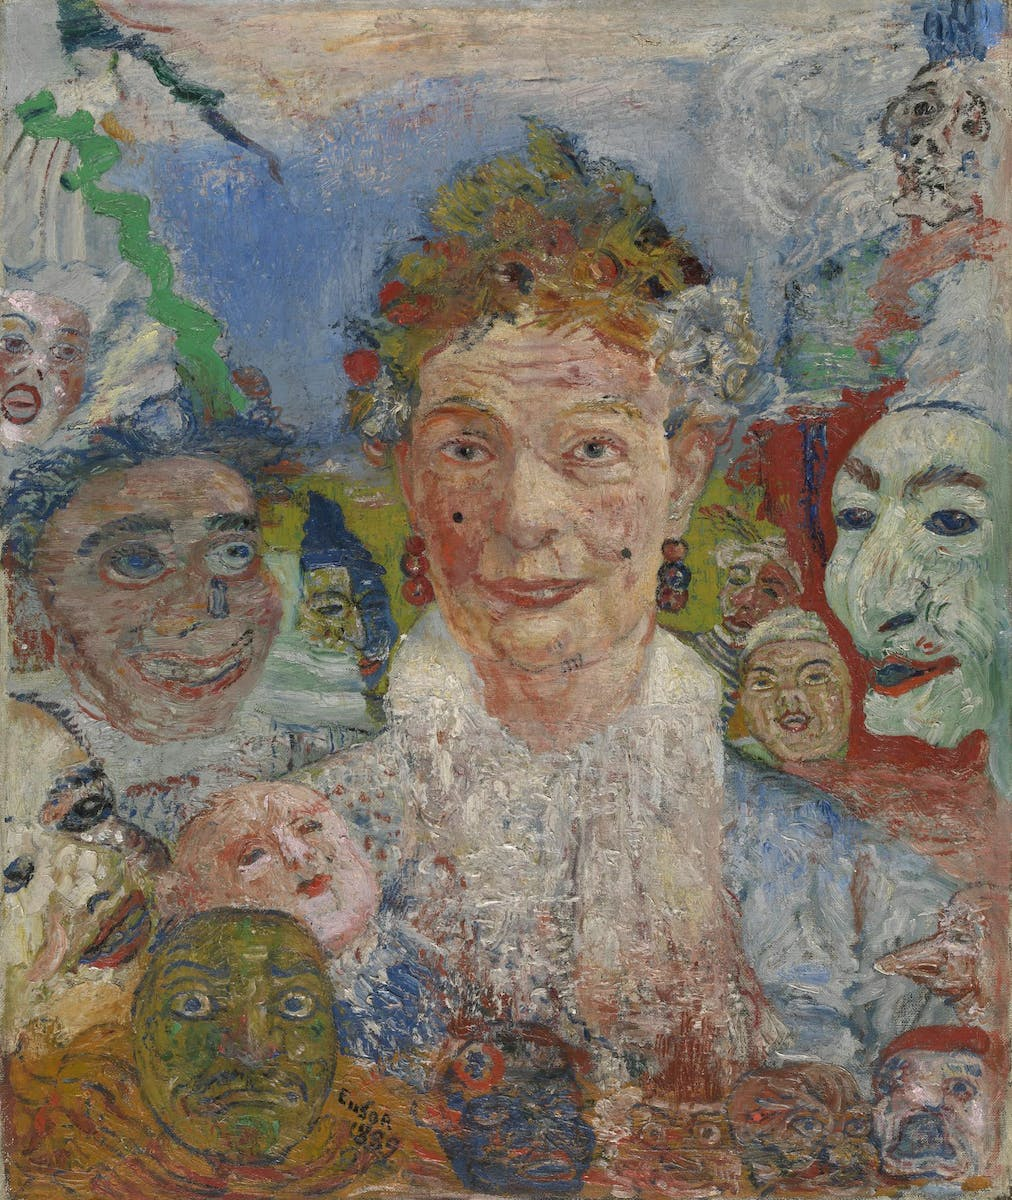 James Ensor, The old lady with masks